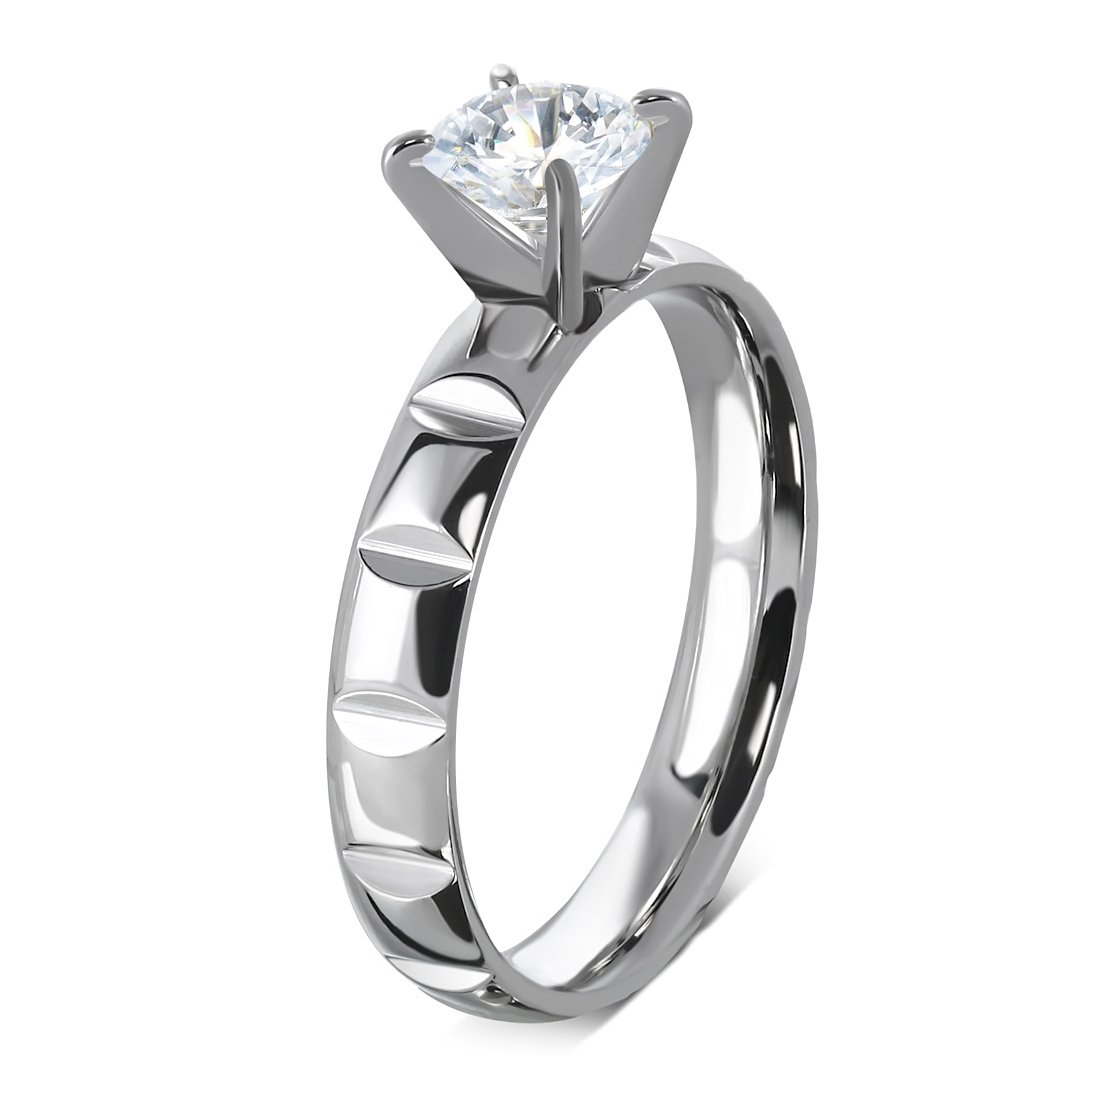 Stainless Steel Prong-Set Round Fancy Cuts Shank Comfort Fit Engagement Ring with Clear CZ